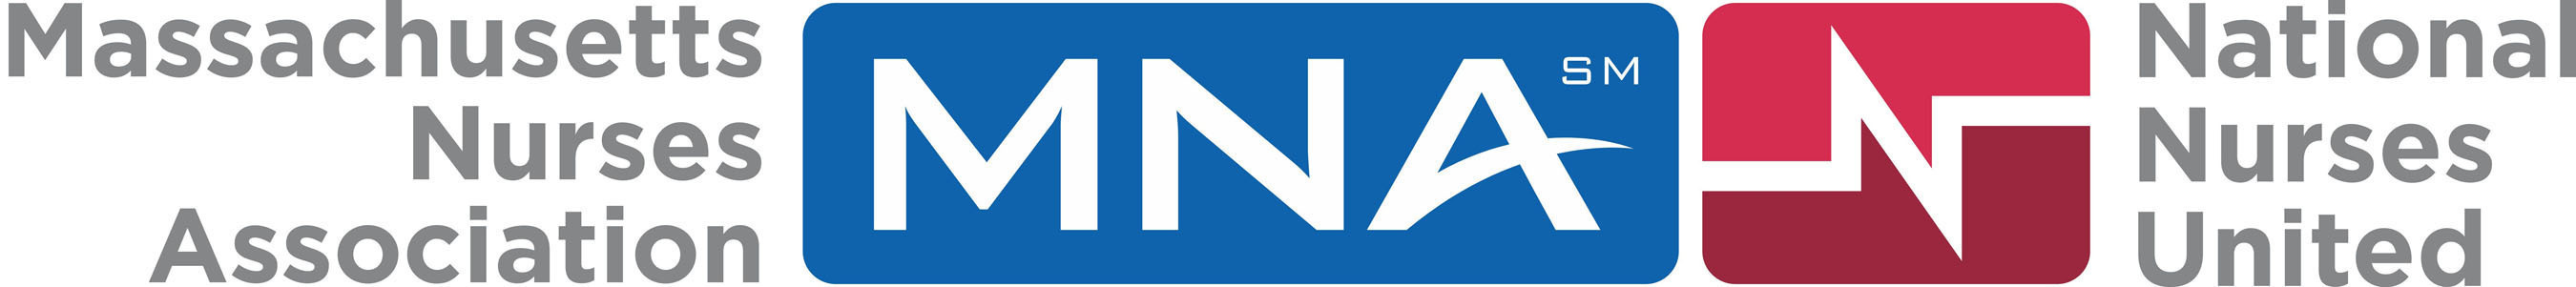 Massachusetts Nurses Association logo.